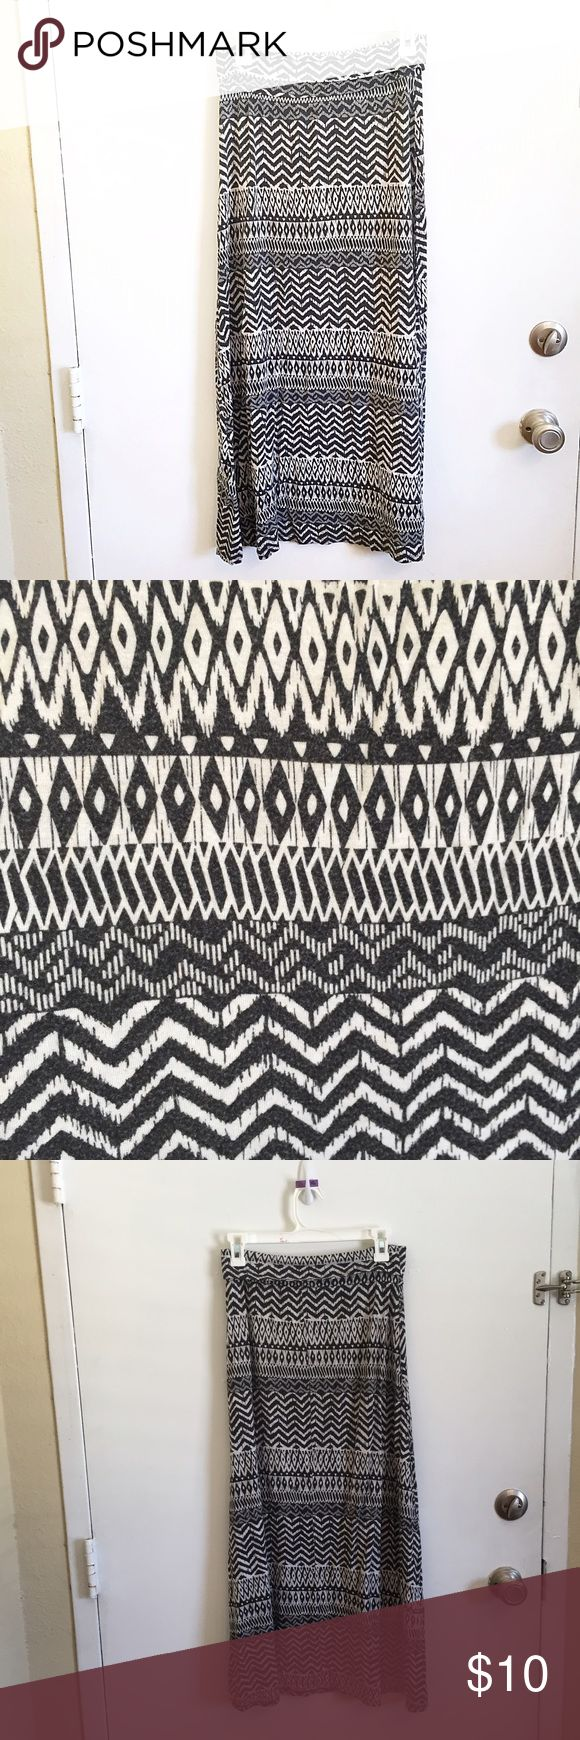 """Black & White Tribal Maxi Skirt Black and white tribal maxi skirt. Size tag is worn off but the waist measures 14"""" flat and unstretched. Does have some fading and piling. Waistband can be folded over or worn high waisted.  #blackandwhite #tribal #aztec #maxi #skirt #maxiskirt #punkydoodle  No modeling Smoke and pet free home I do discount bundles Skirts Maxi"""